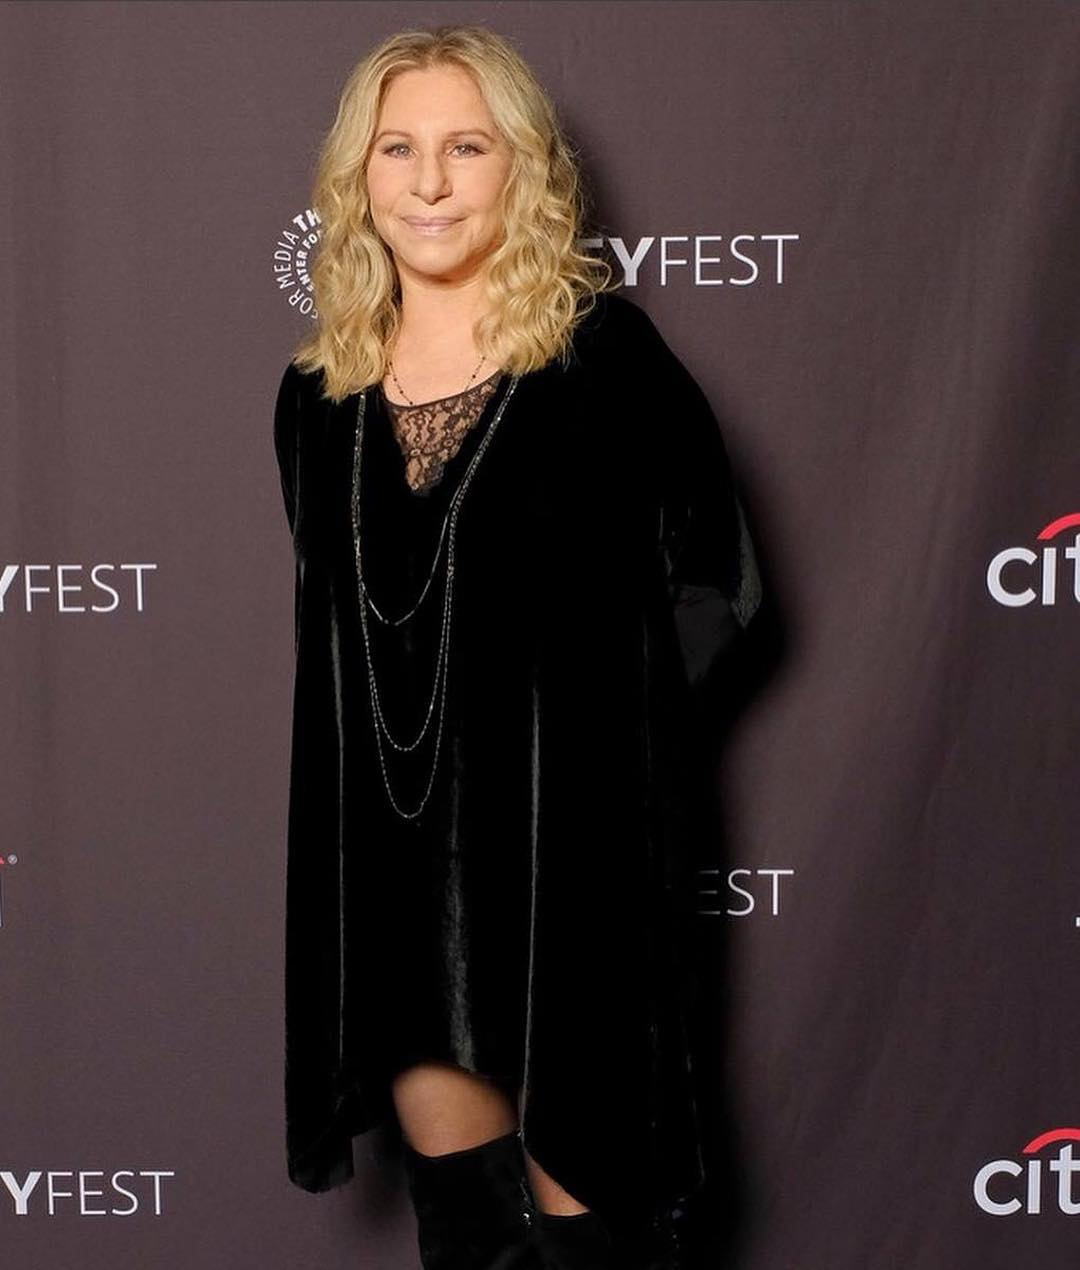 Barbra Streisand attending an event in a total black attire complimented by a neck piece